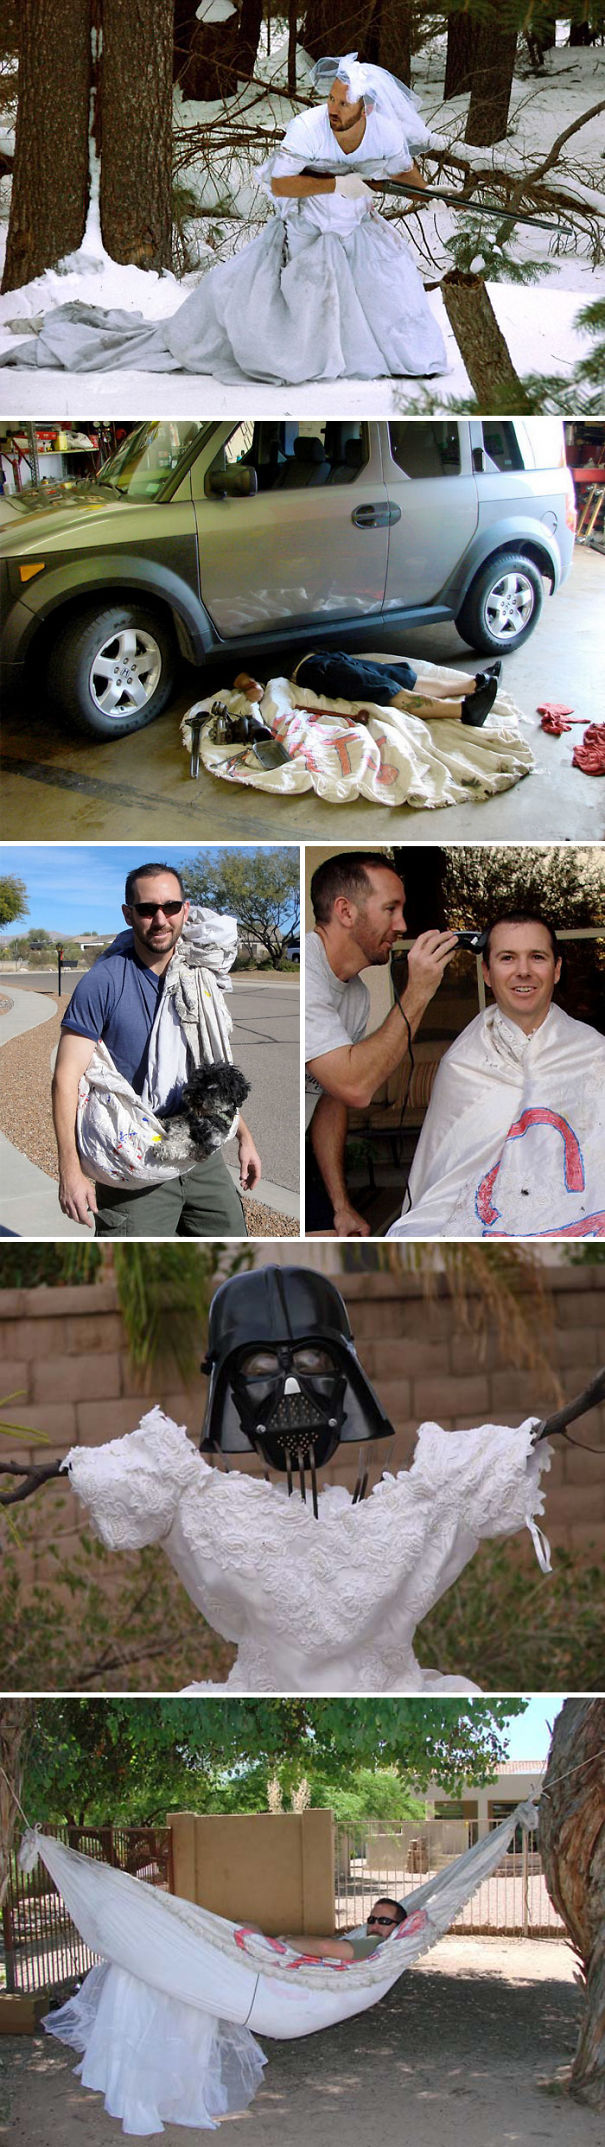 Man Finds Over 100 Ways To Use His Ex-Wife's Wedding Dress